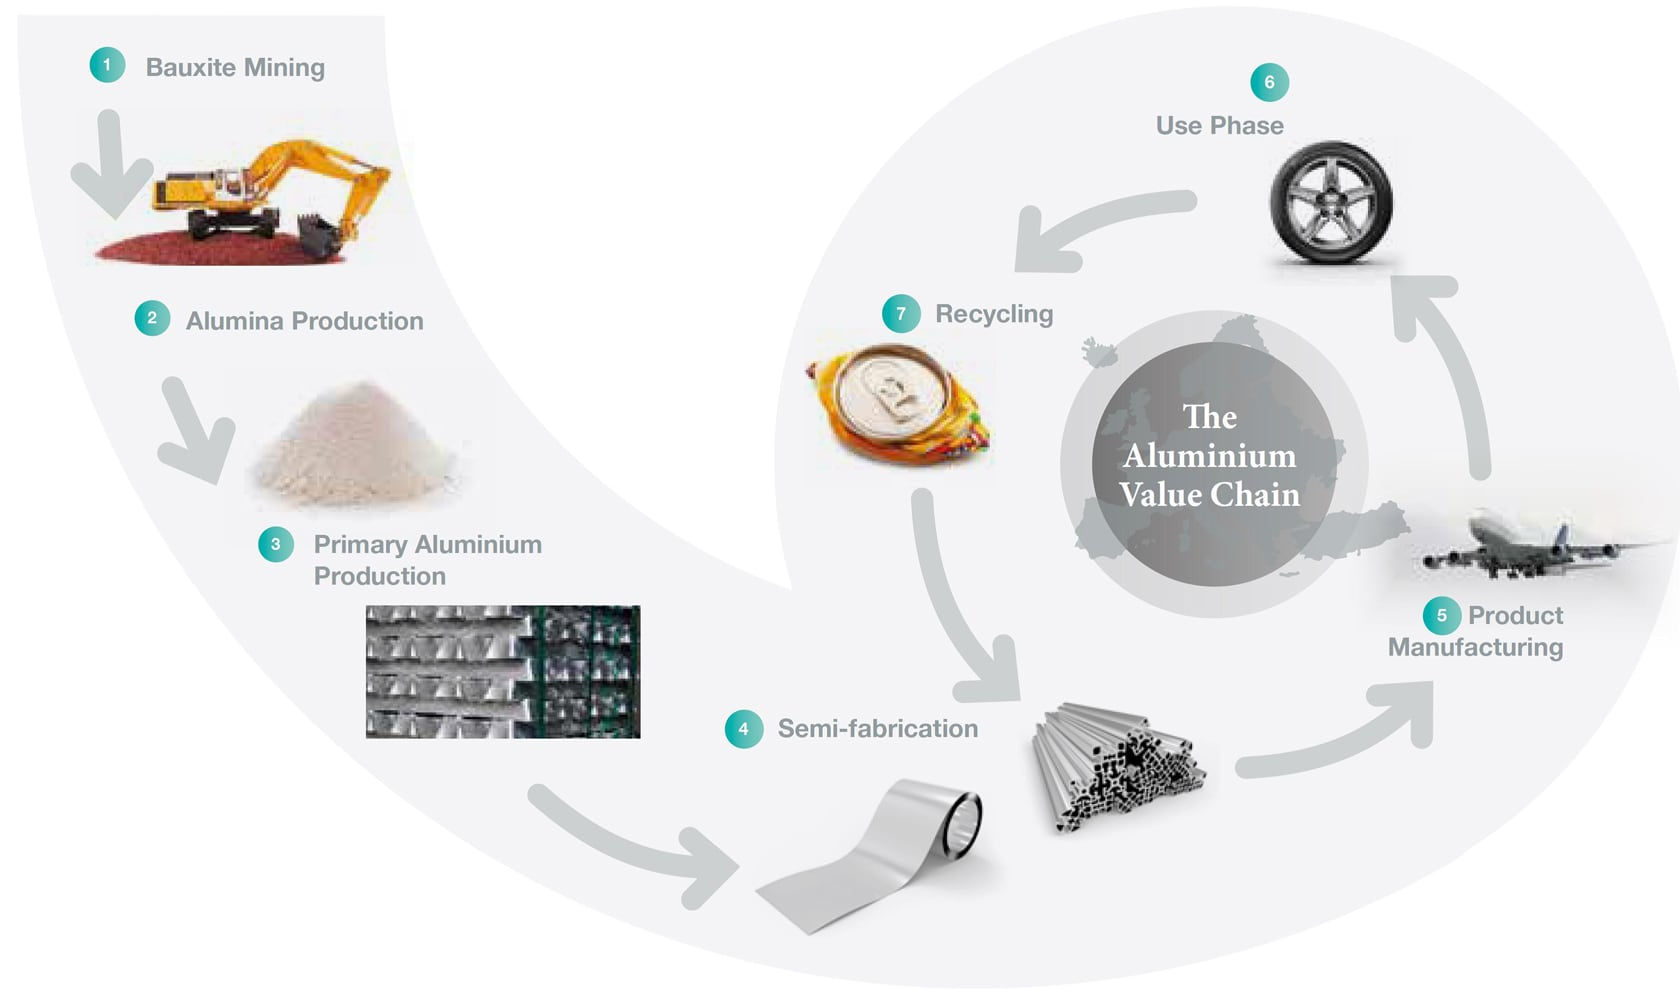 How To Design A Product For Recyclability